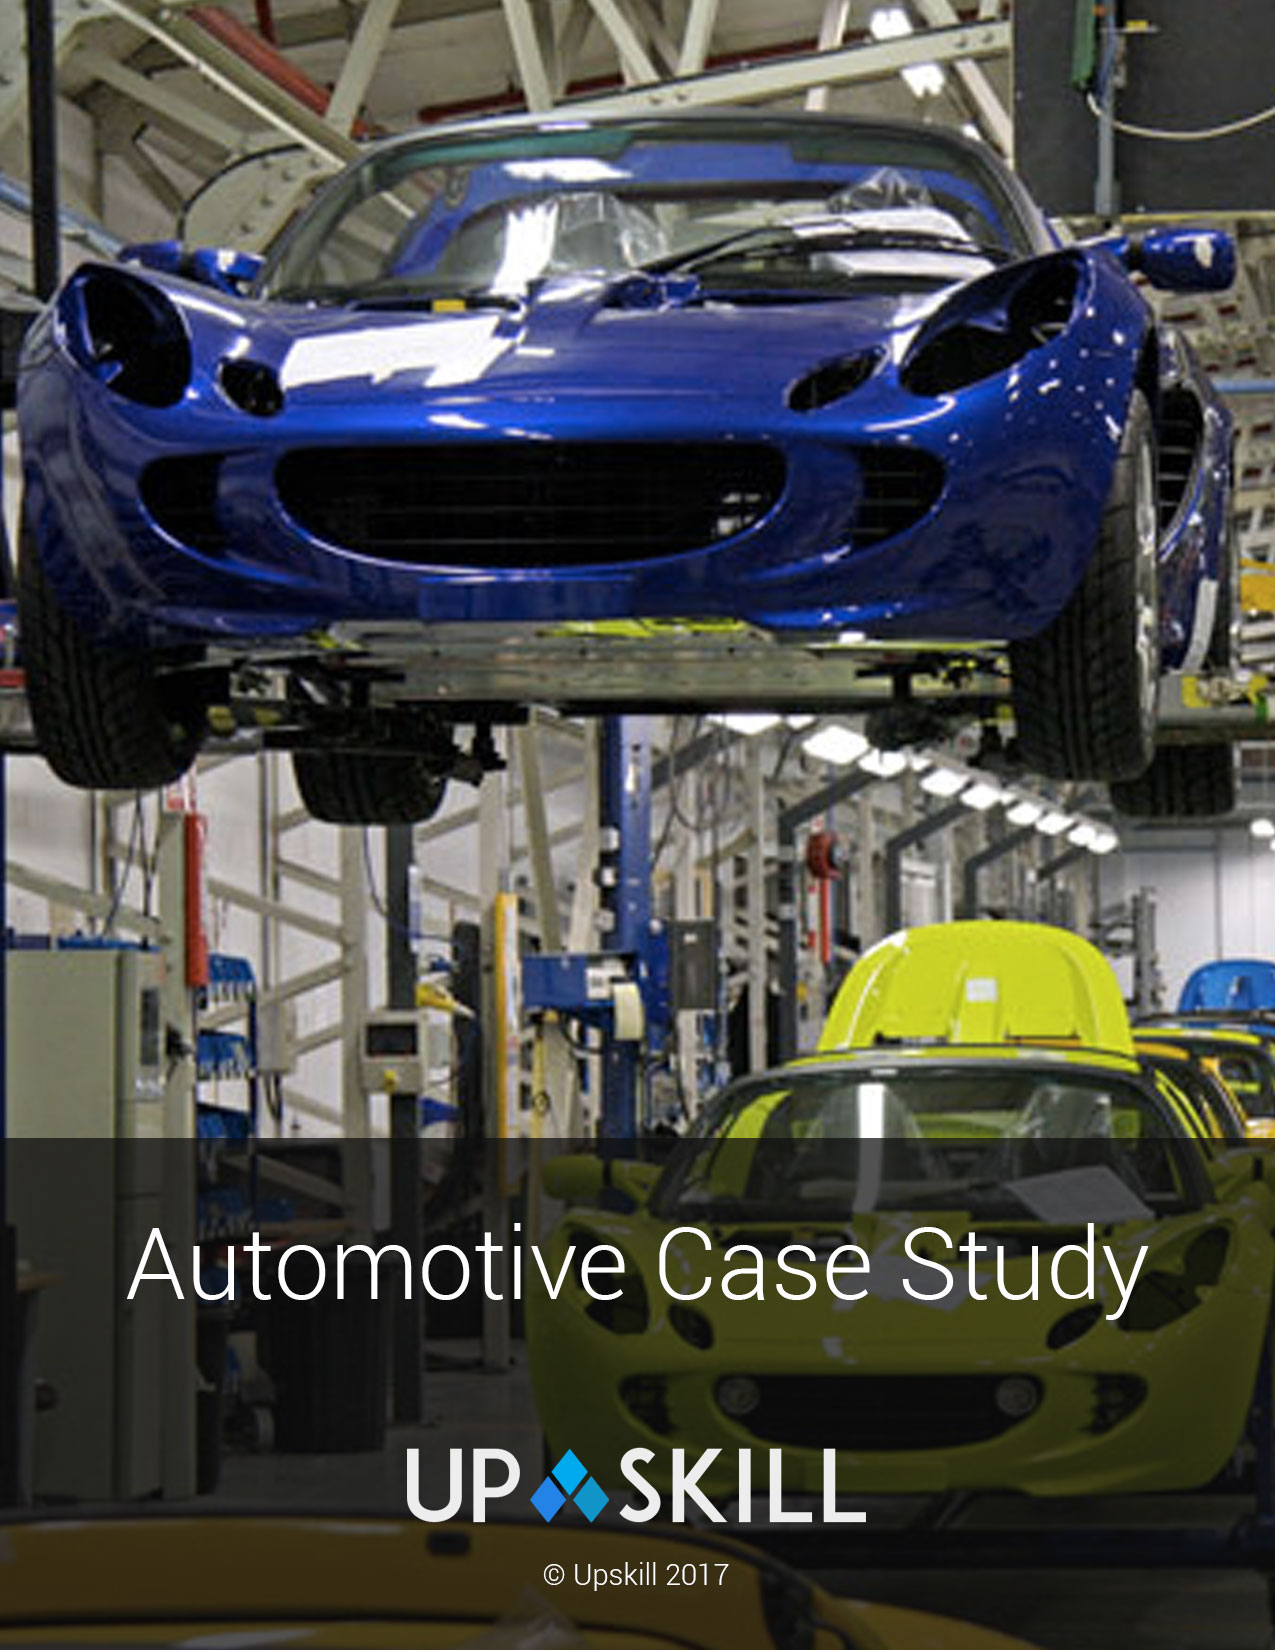 Augmented Reality in Automotive Case Study